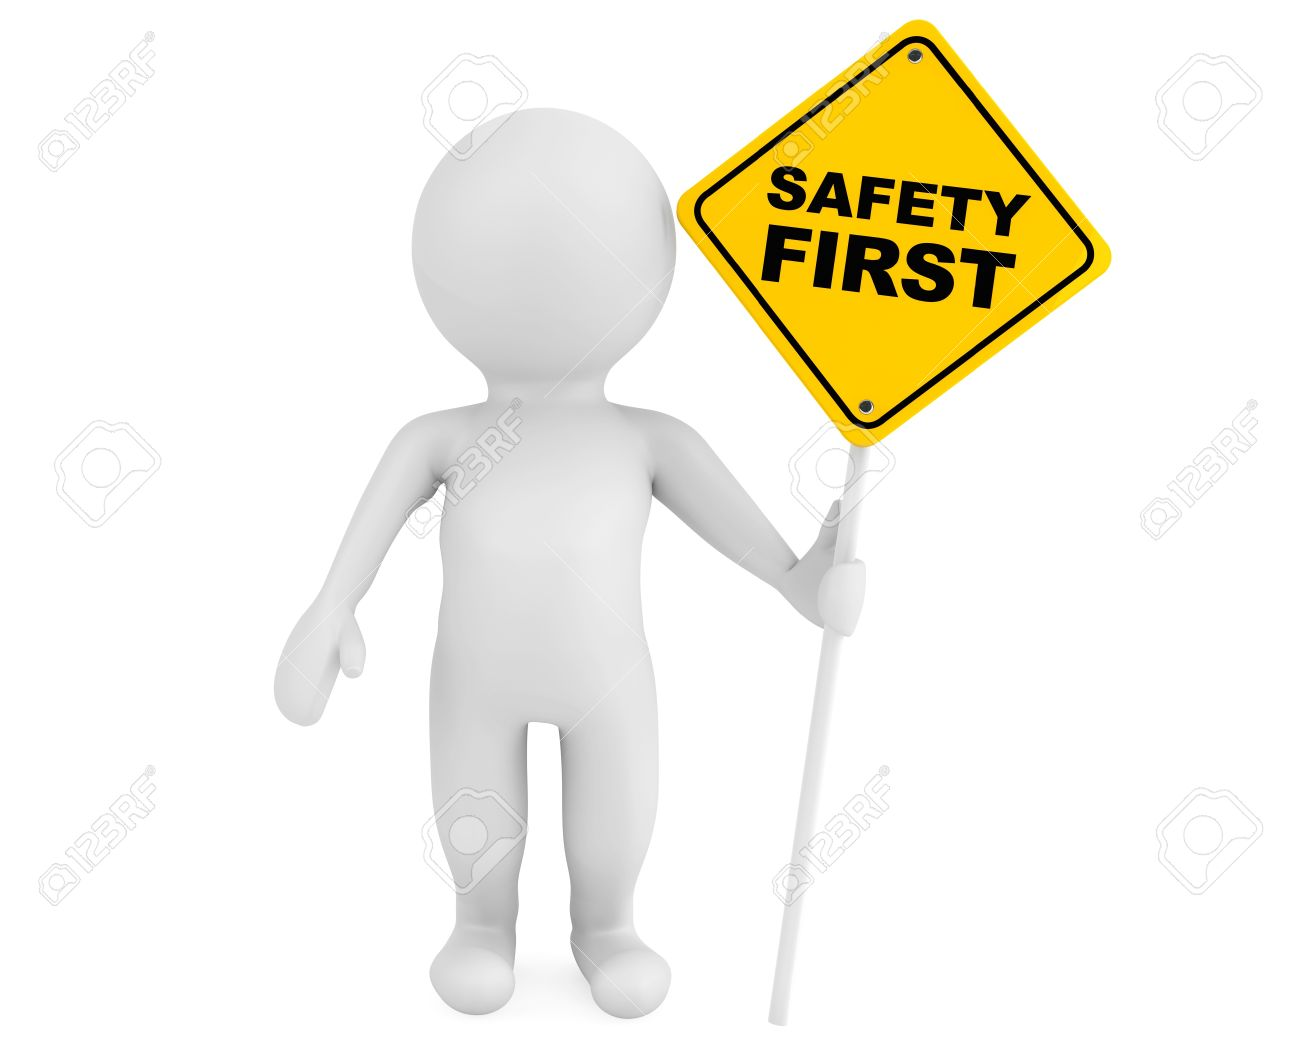 Safety first clipart 12 » Clipart Station.